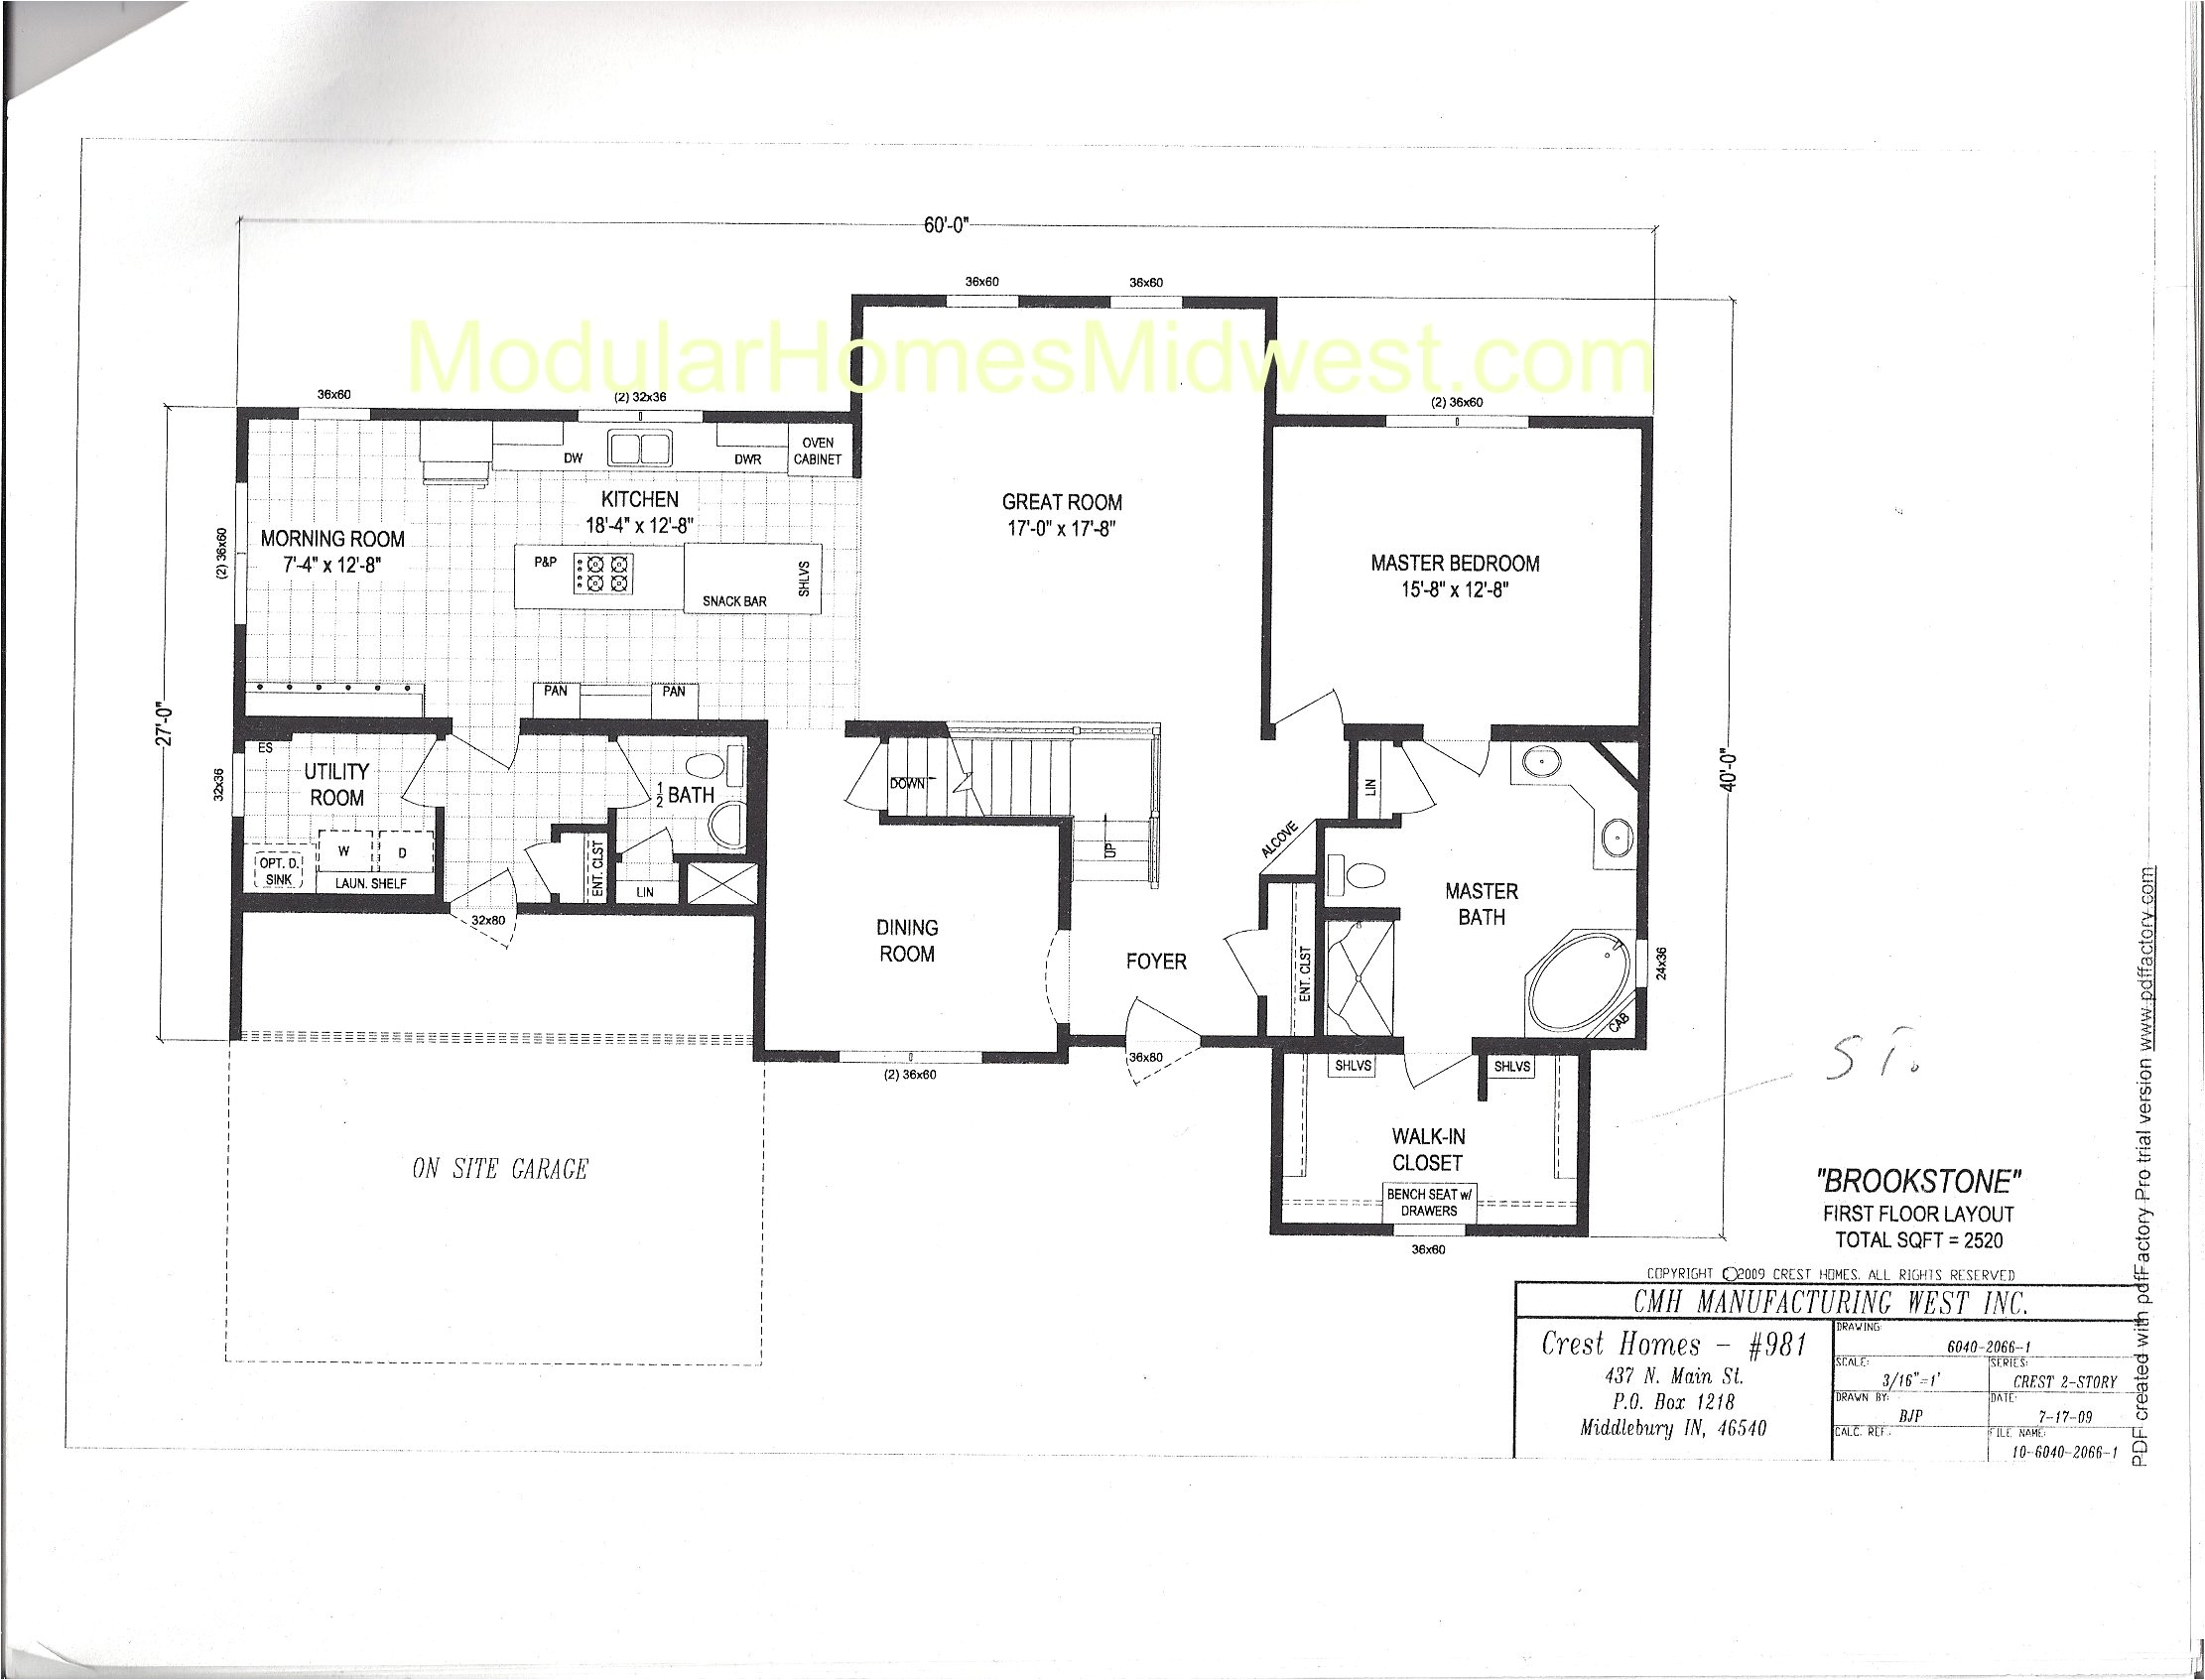 brookstone crest homes two story floor plan 2